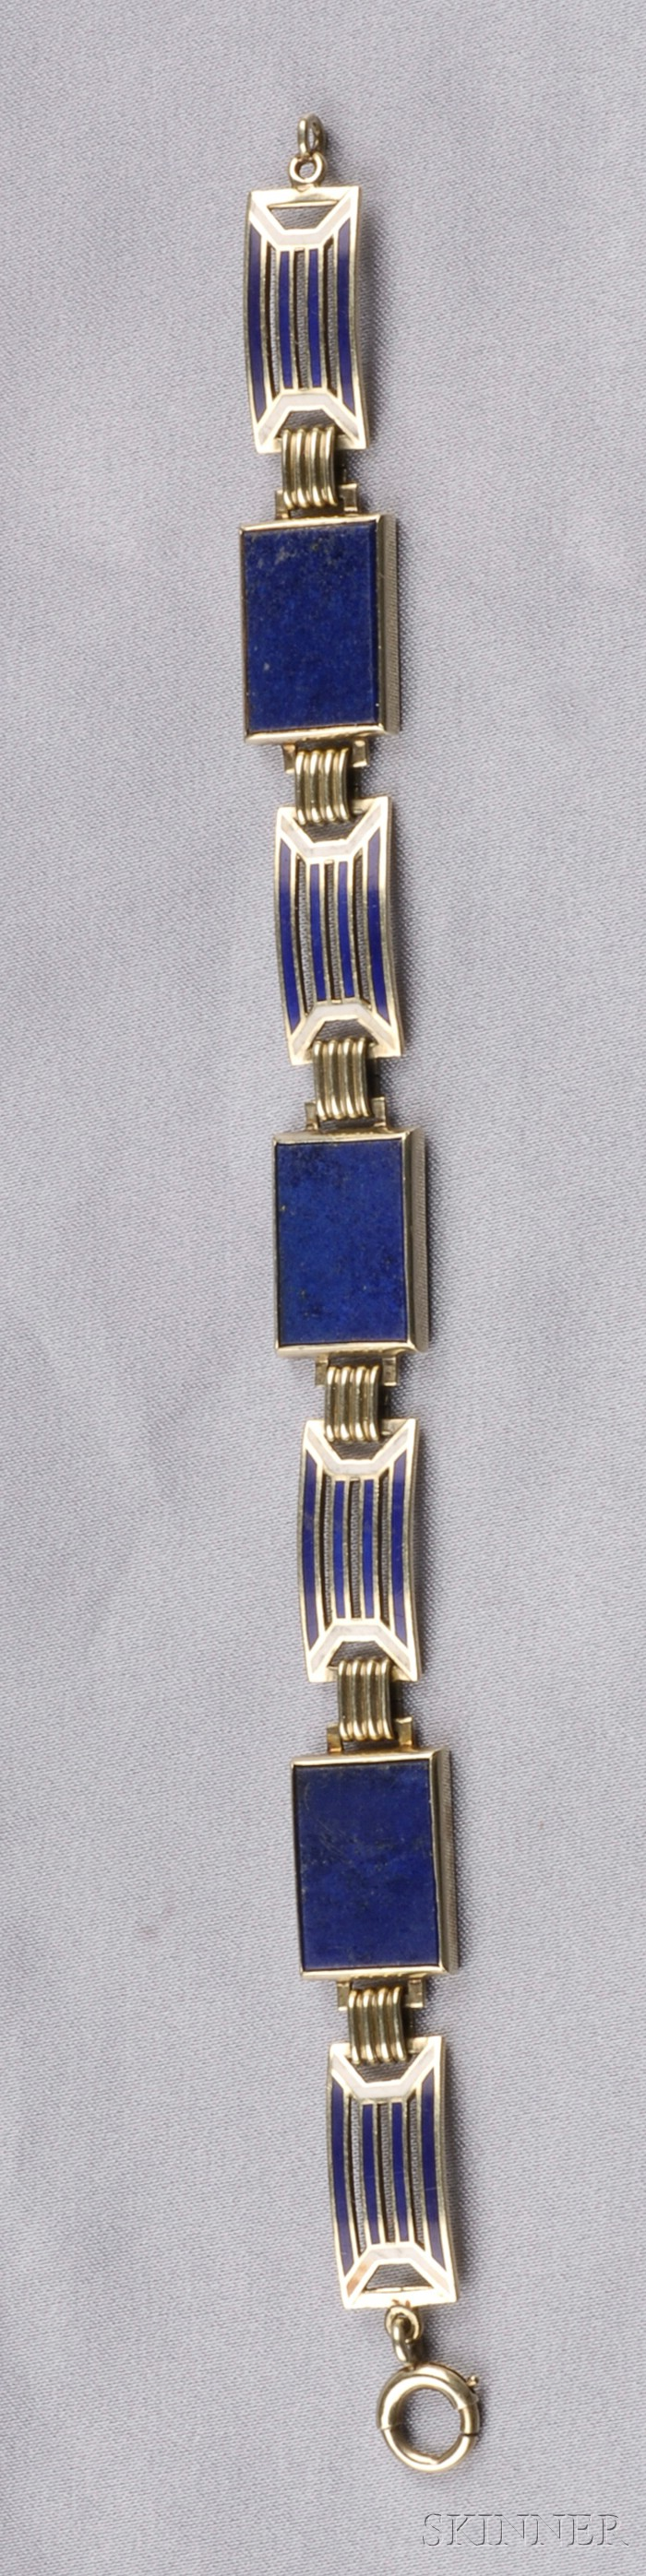 Art Deco 14kt Gold, Enamel, and Lapis Bracelet, Wordley, Allsopp & Bliss